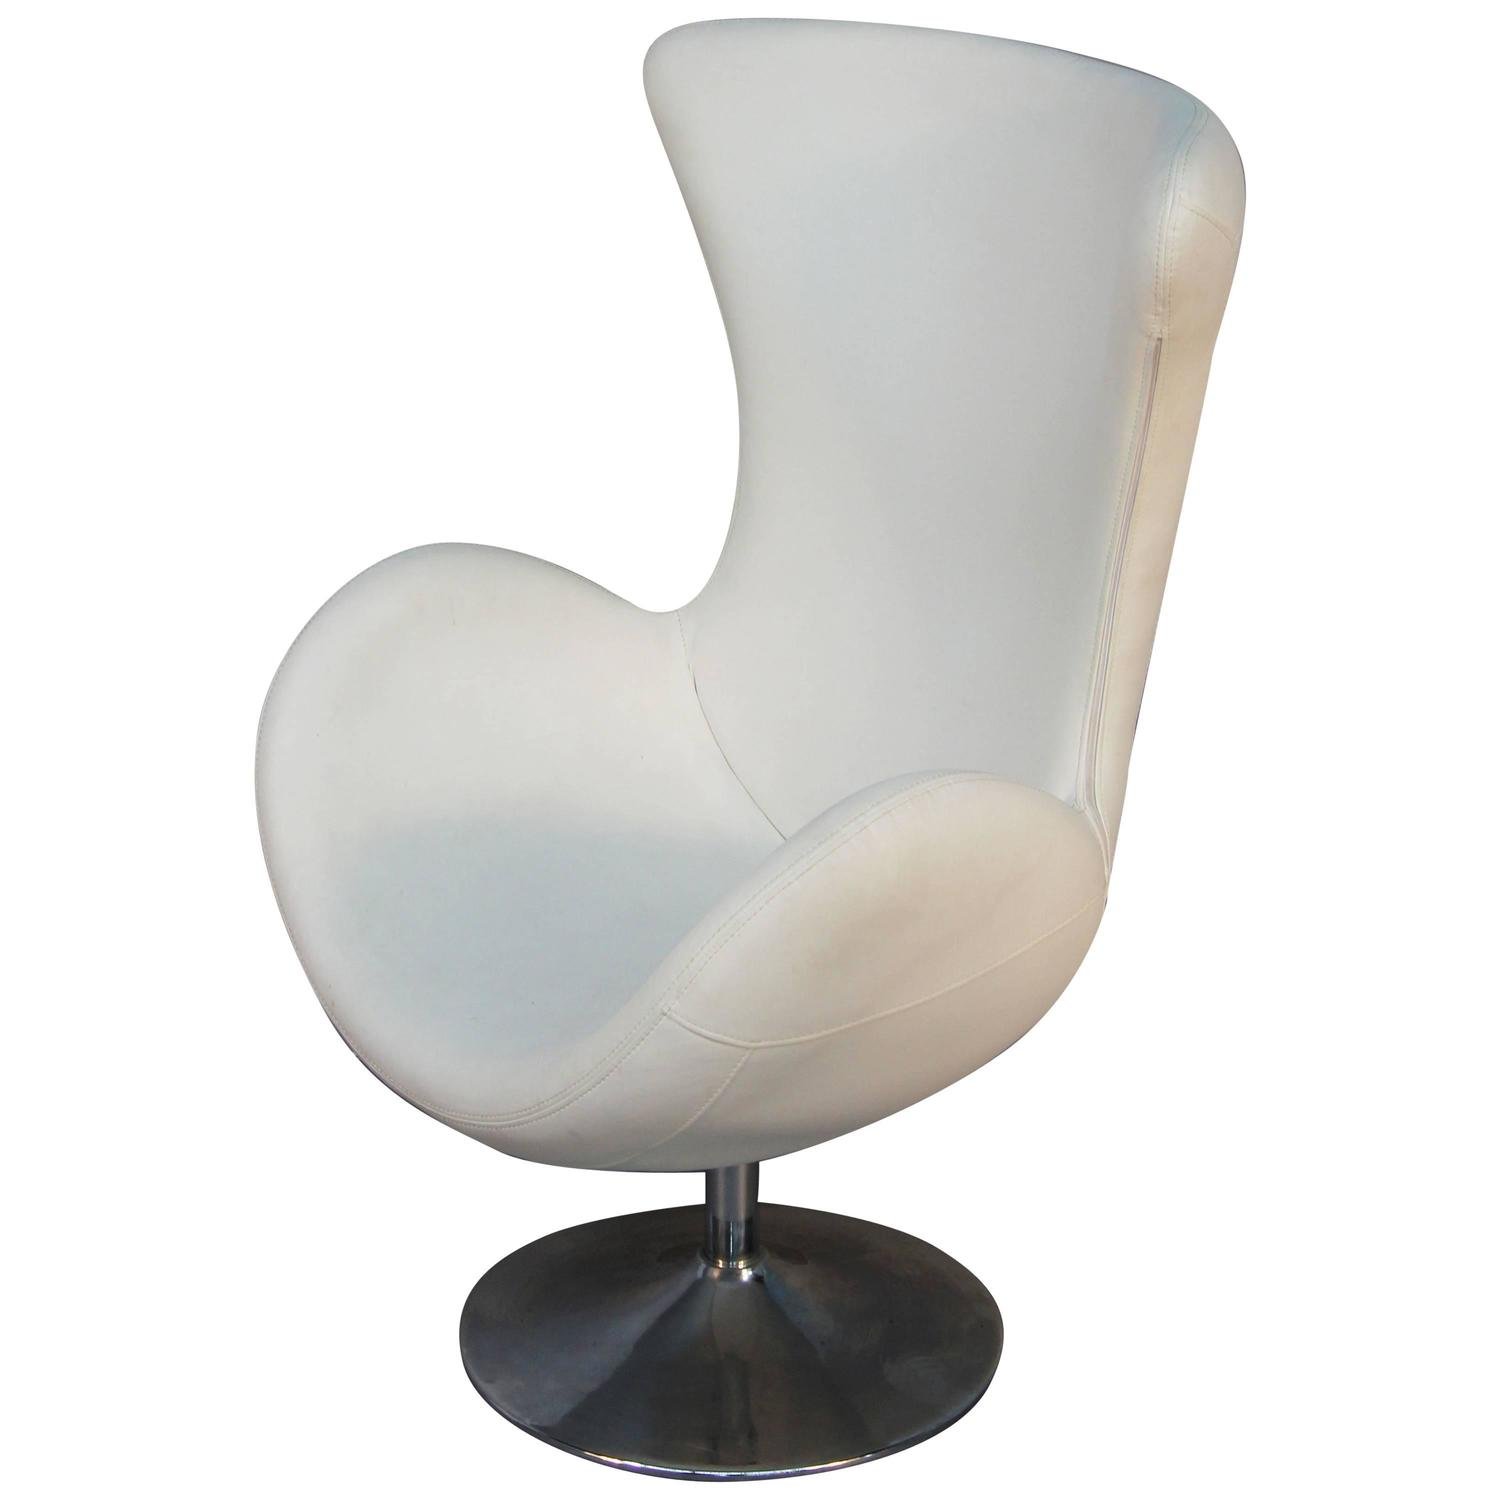 ... Retro Egg Chair By Vintage Egg Chair For Sale At 1stdibs ...